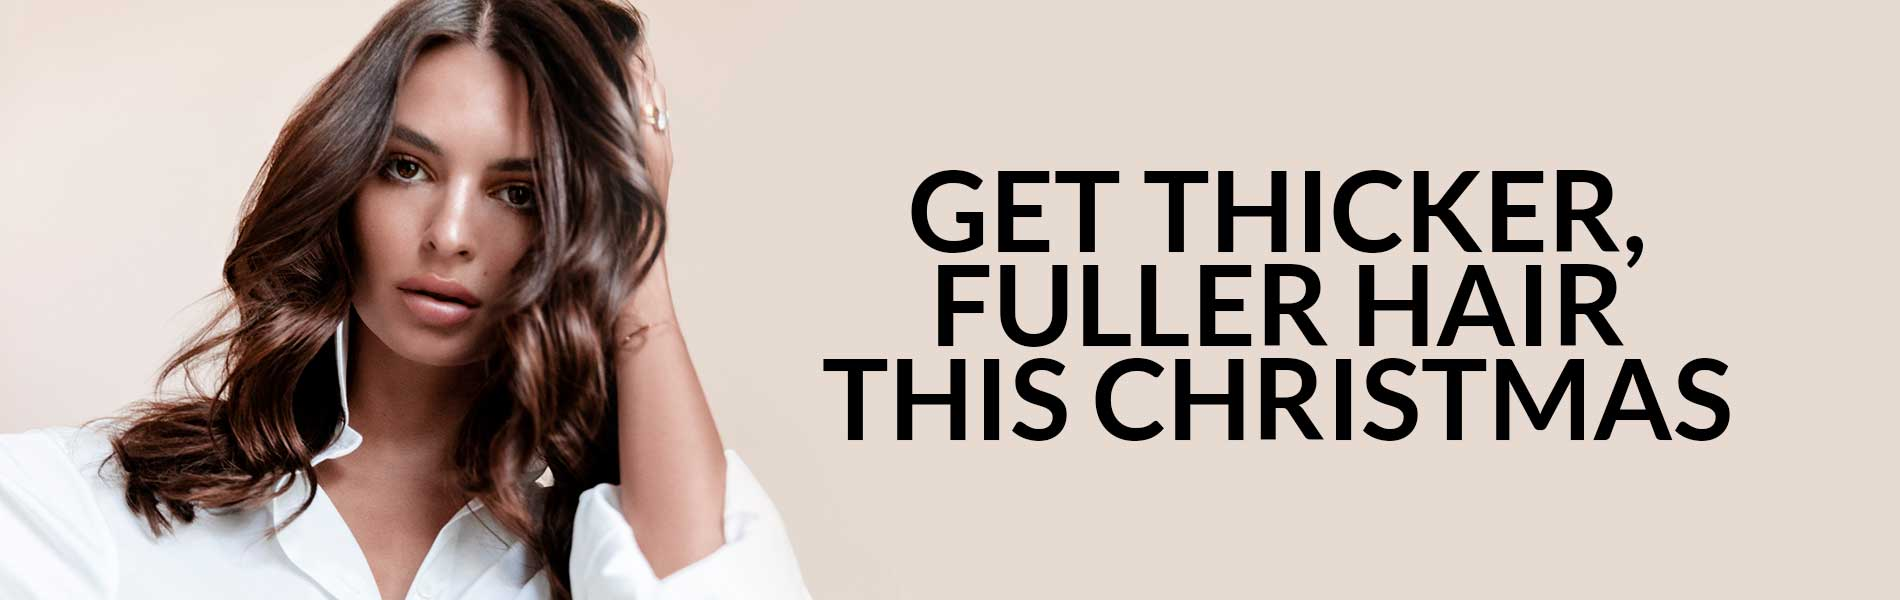 Get Thicker Fuller Hair This Christmas banner